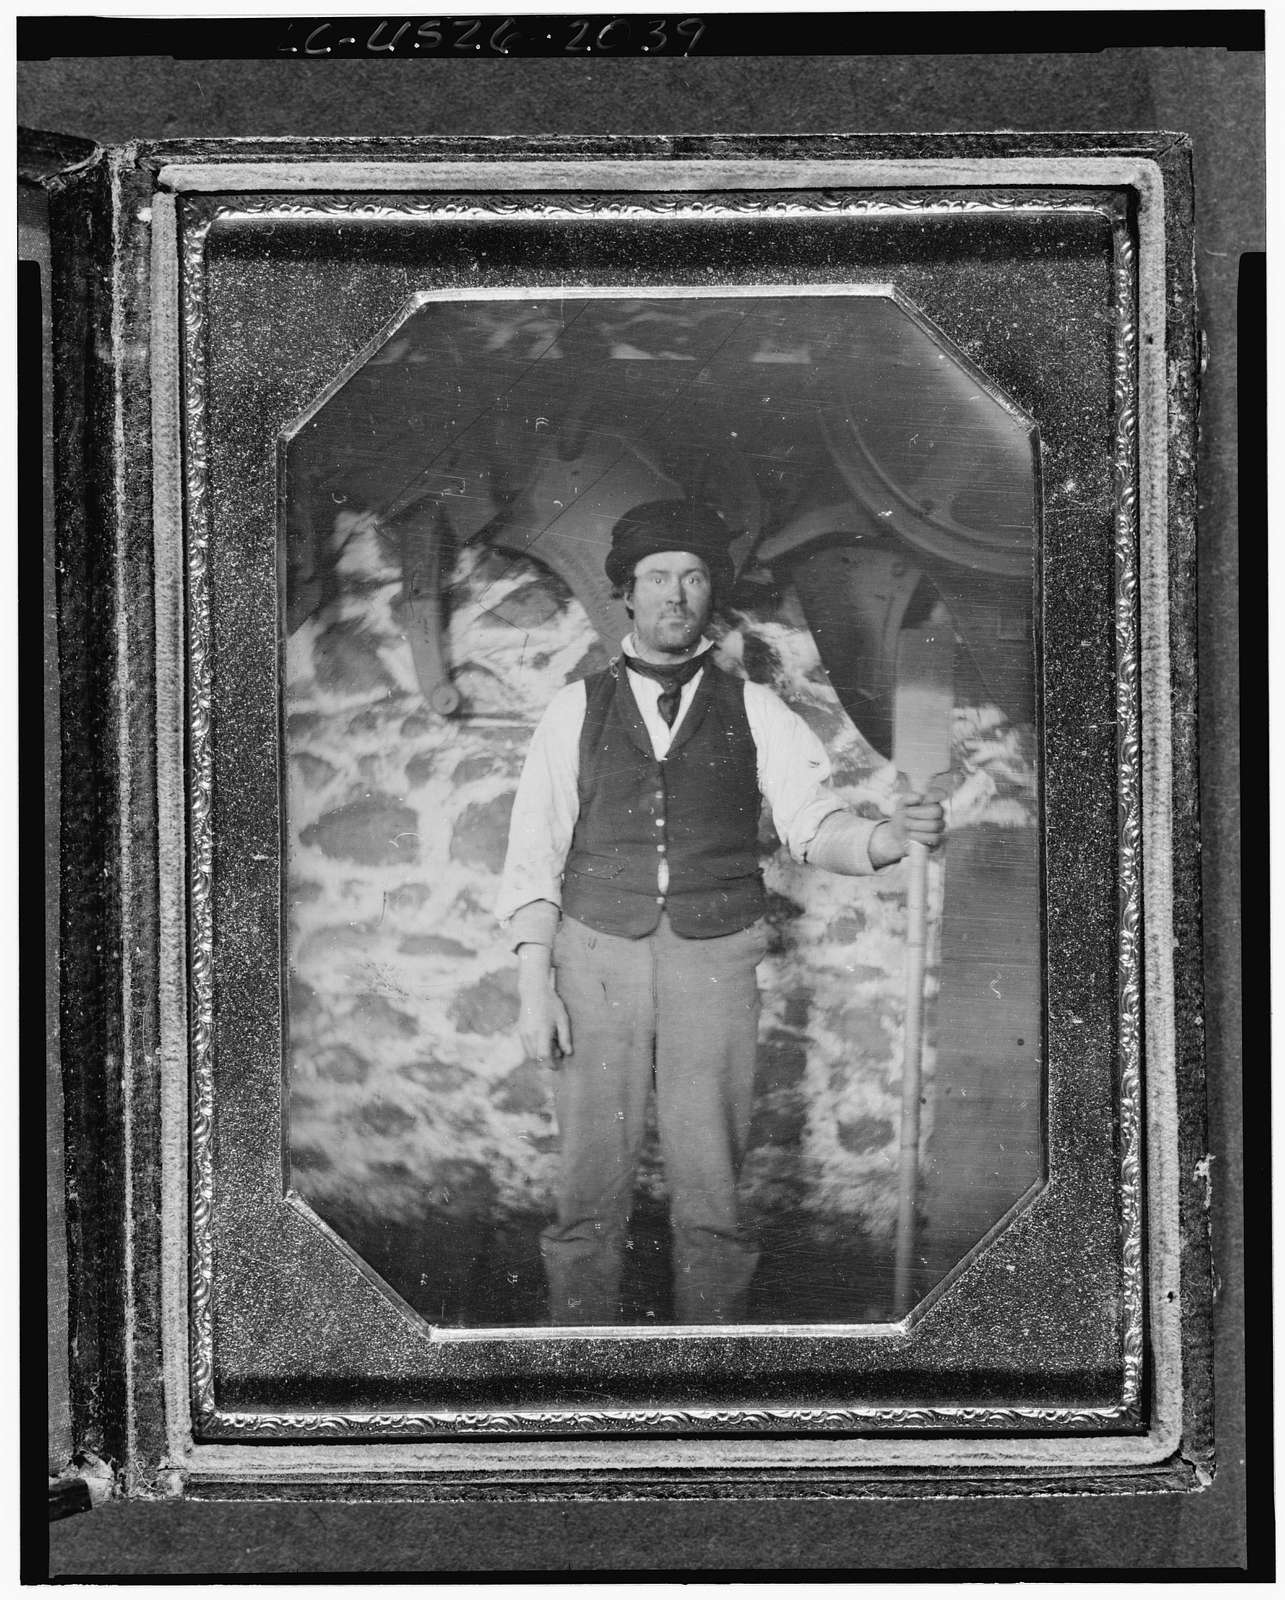 [Occupational portrait of an unidentified man, full-length, facing front, with a long handled tool, in front of machinery and a stone wall]